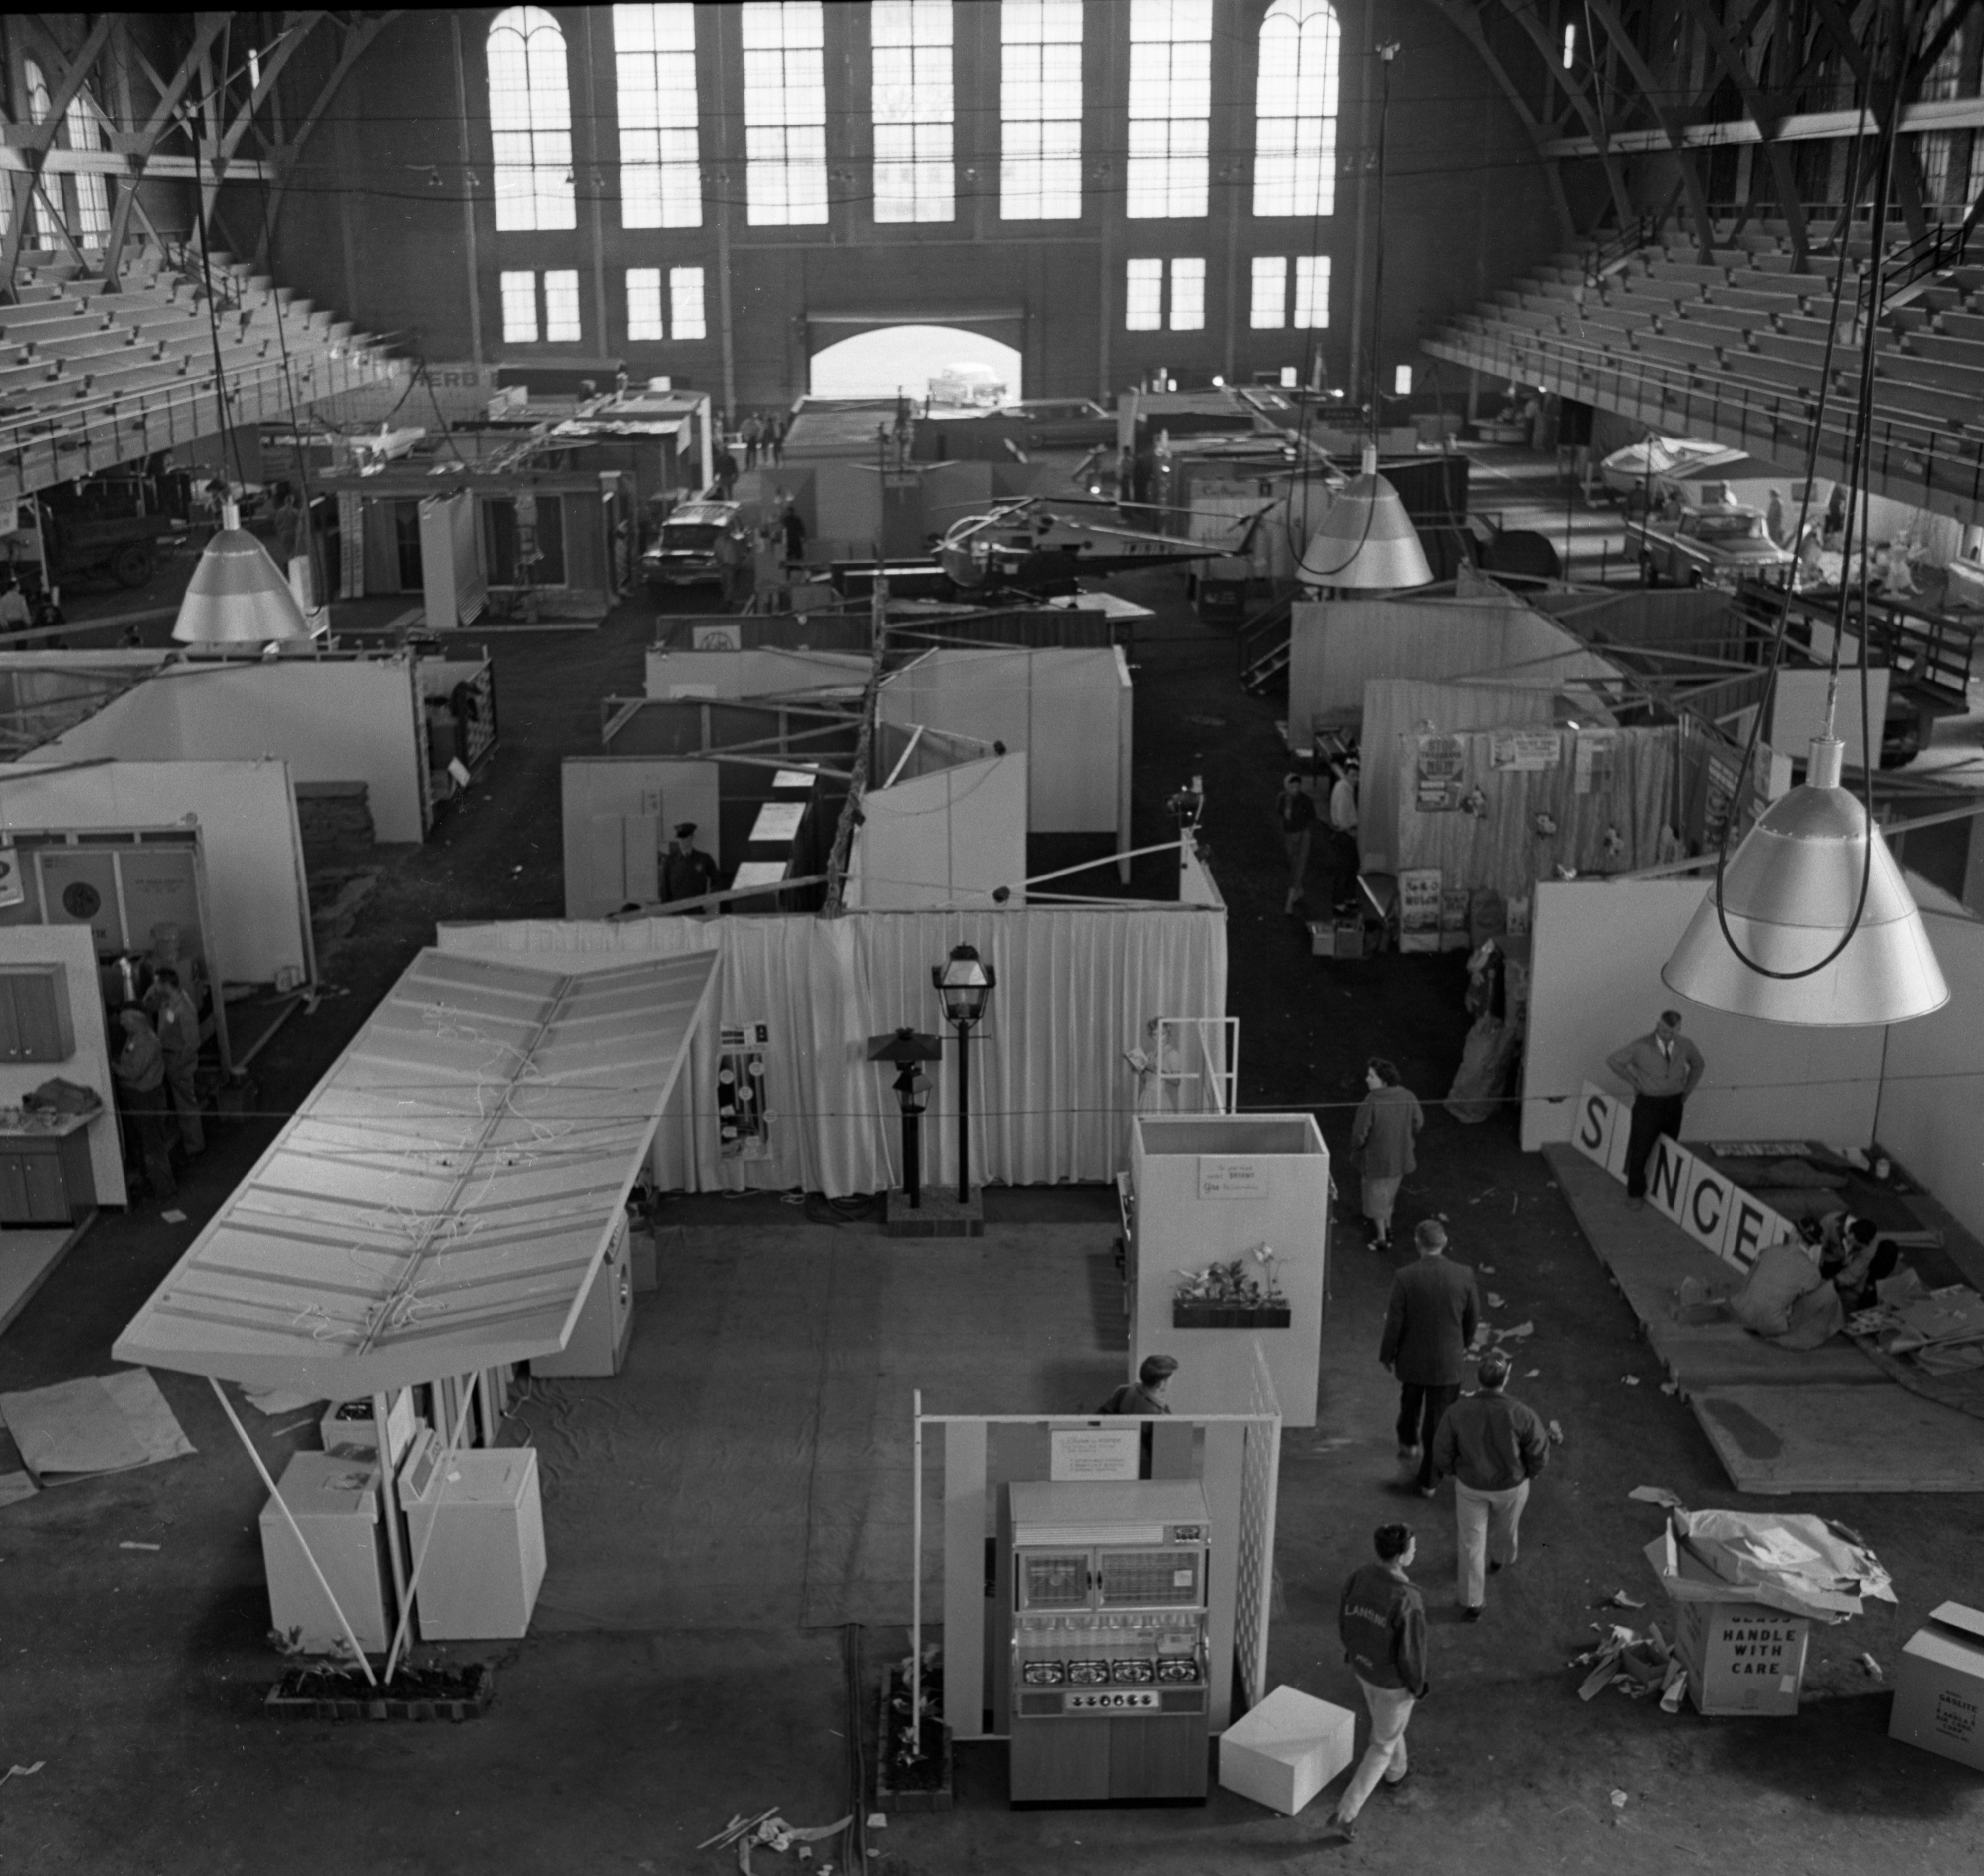 Annual Junior Chamber of Commerce Builders Show, April 1961 image